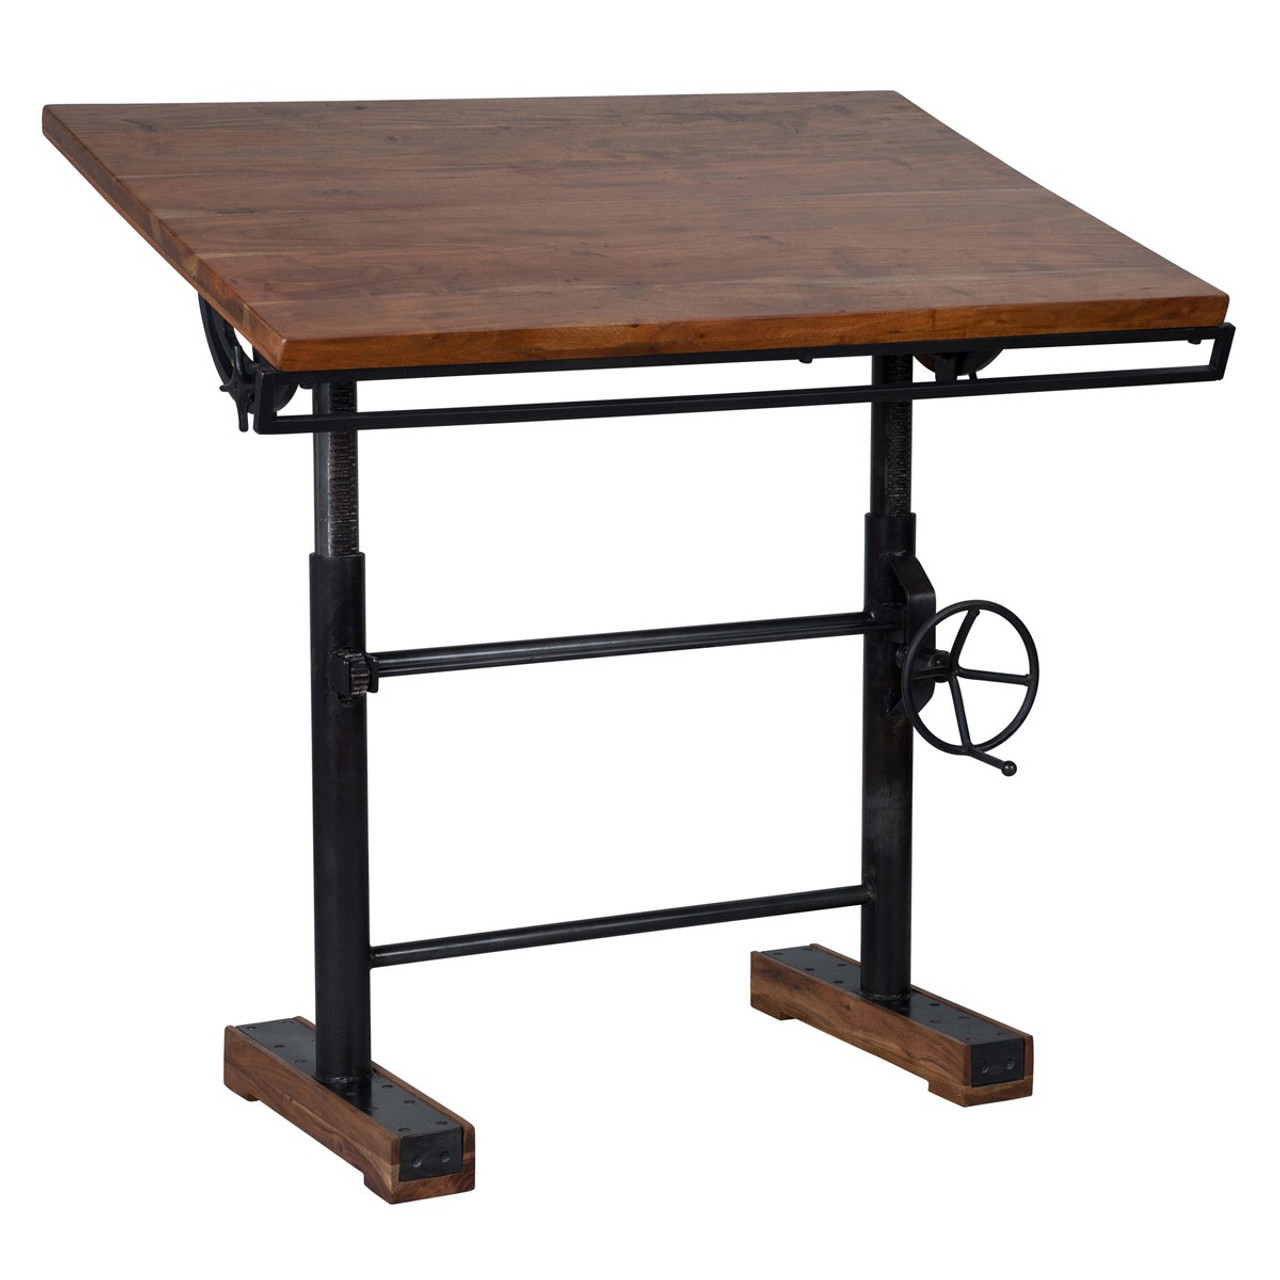 Ordinaire Steampunk Industrial Crank Adjustable Standing Desk